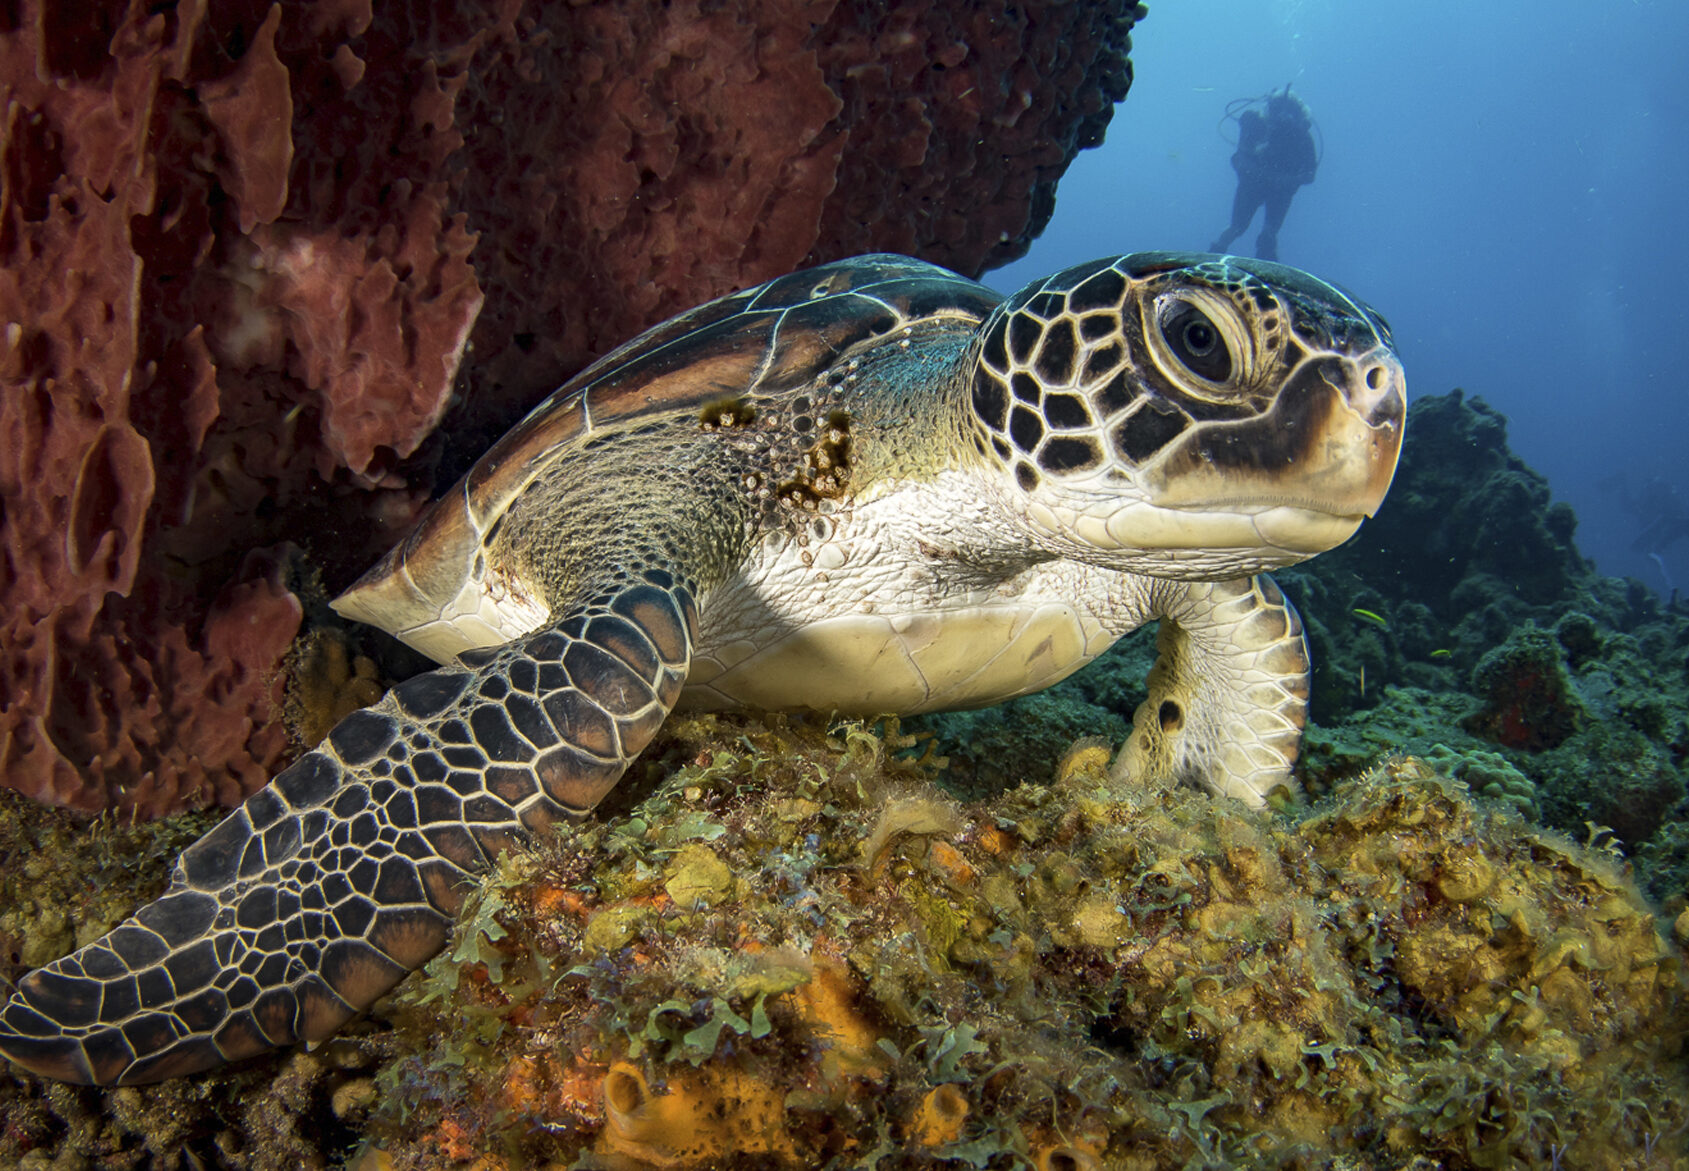 Hawksbill sea turtle on a coral reef with a scuba diver watching from afar